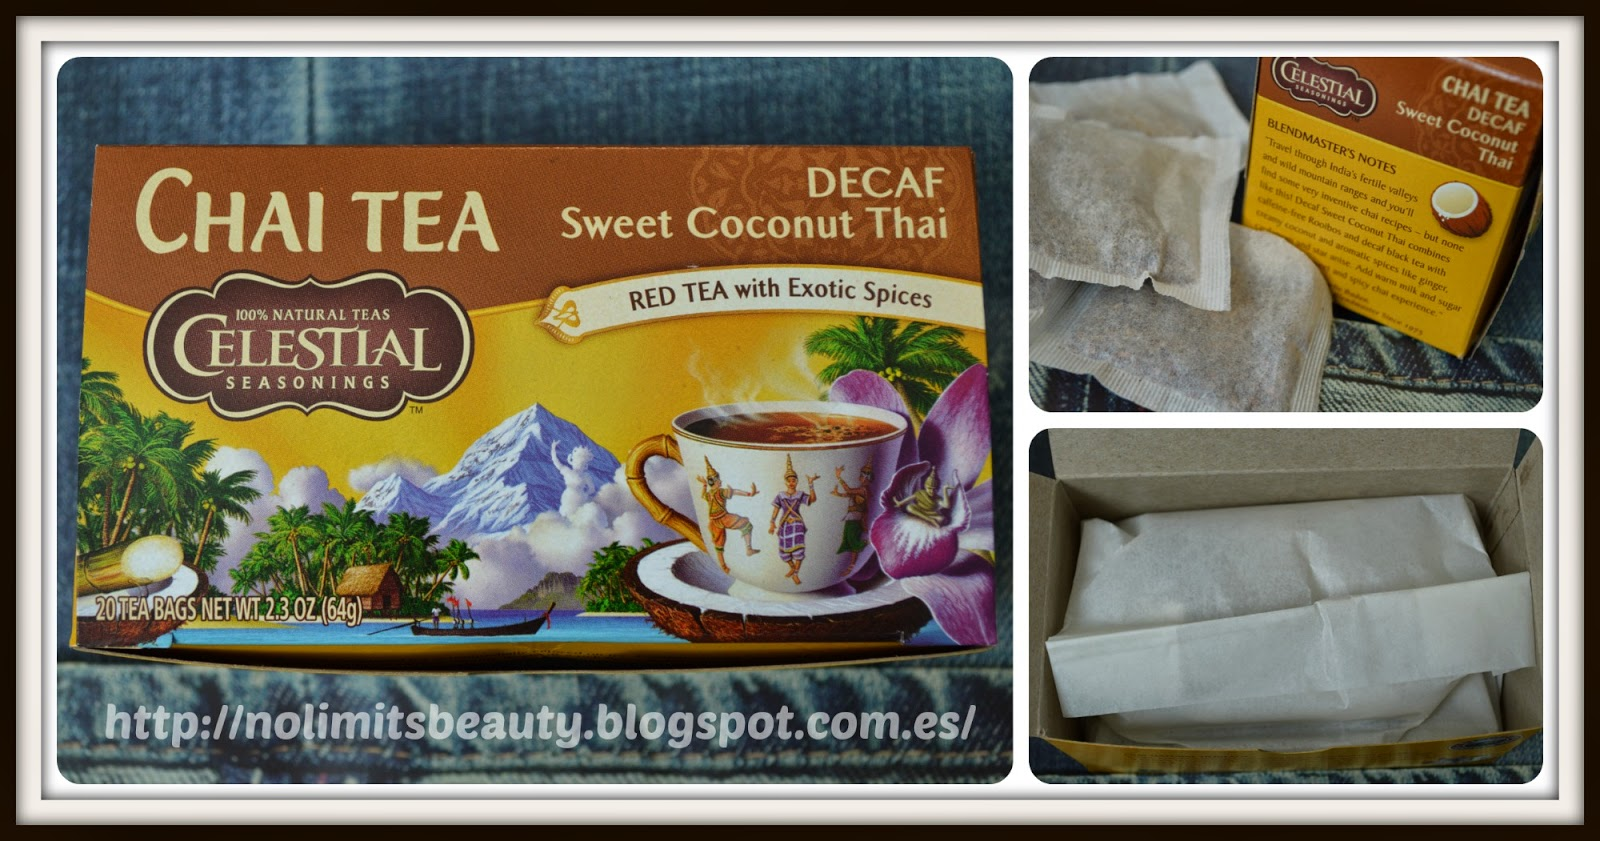 Sweet Coconut Thai Decaf Tea de Celestial Seasonings